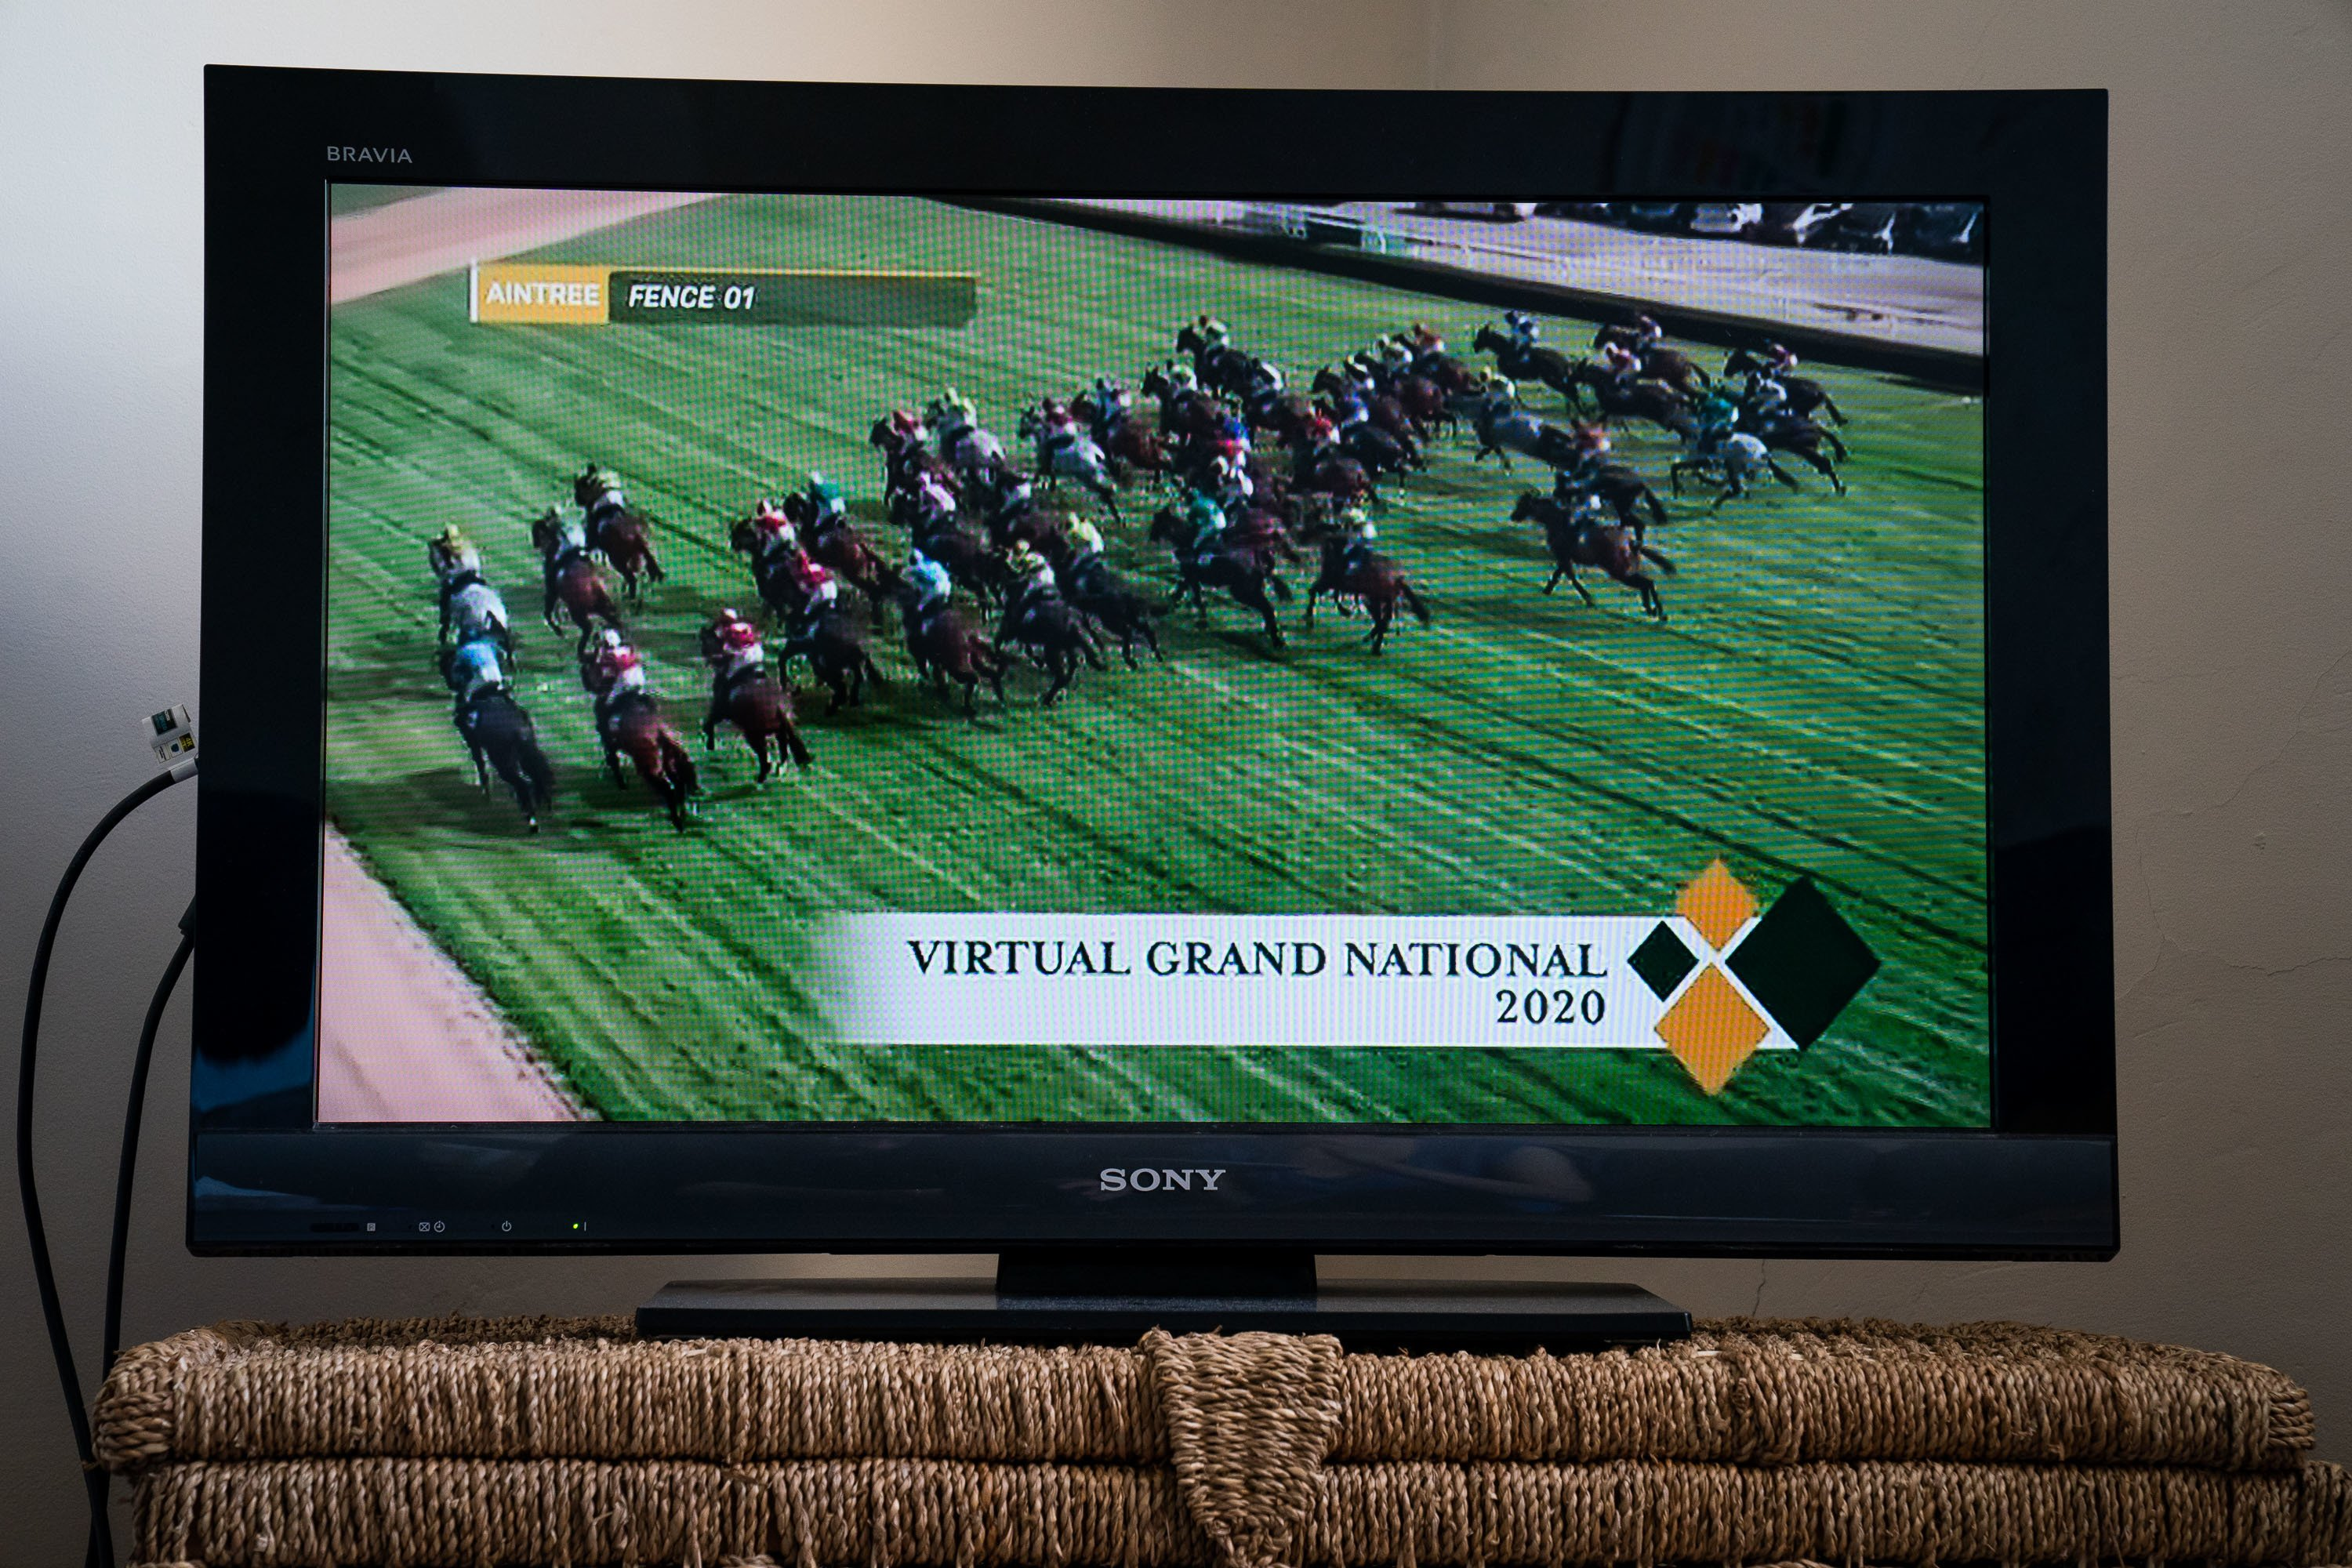 NHS wins Grand National